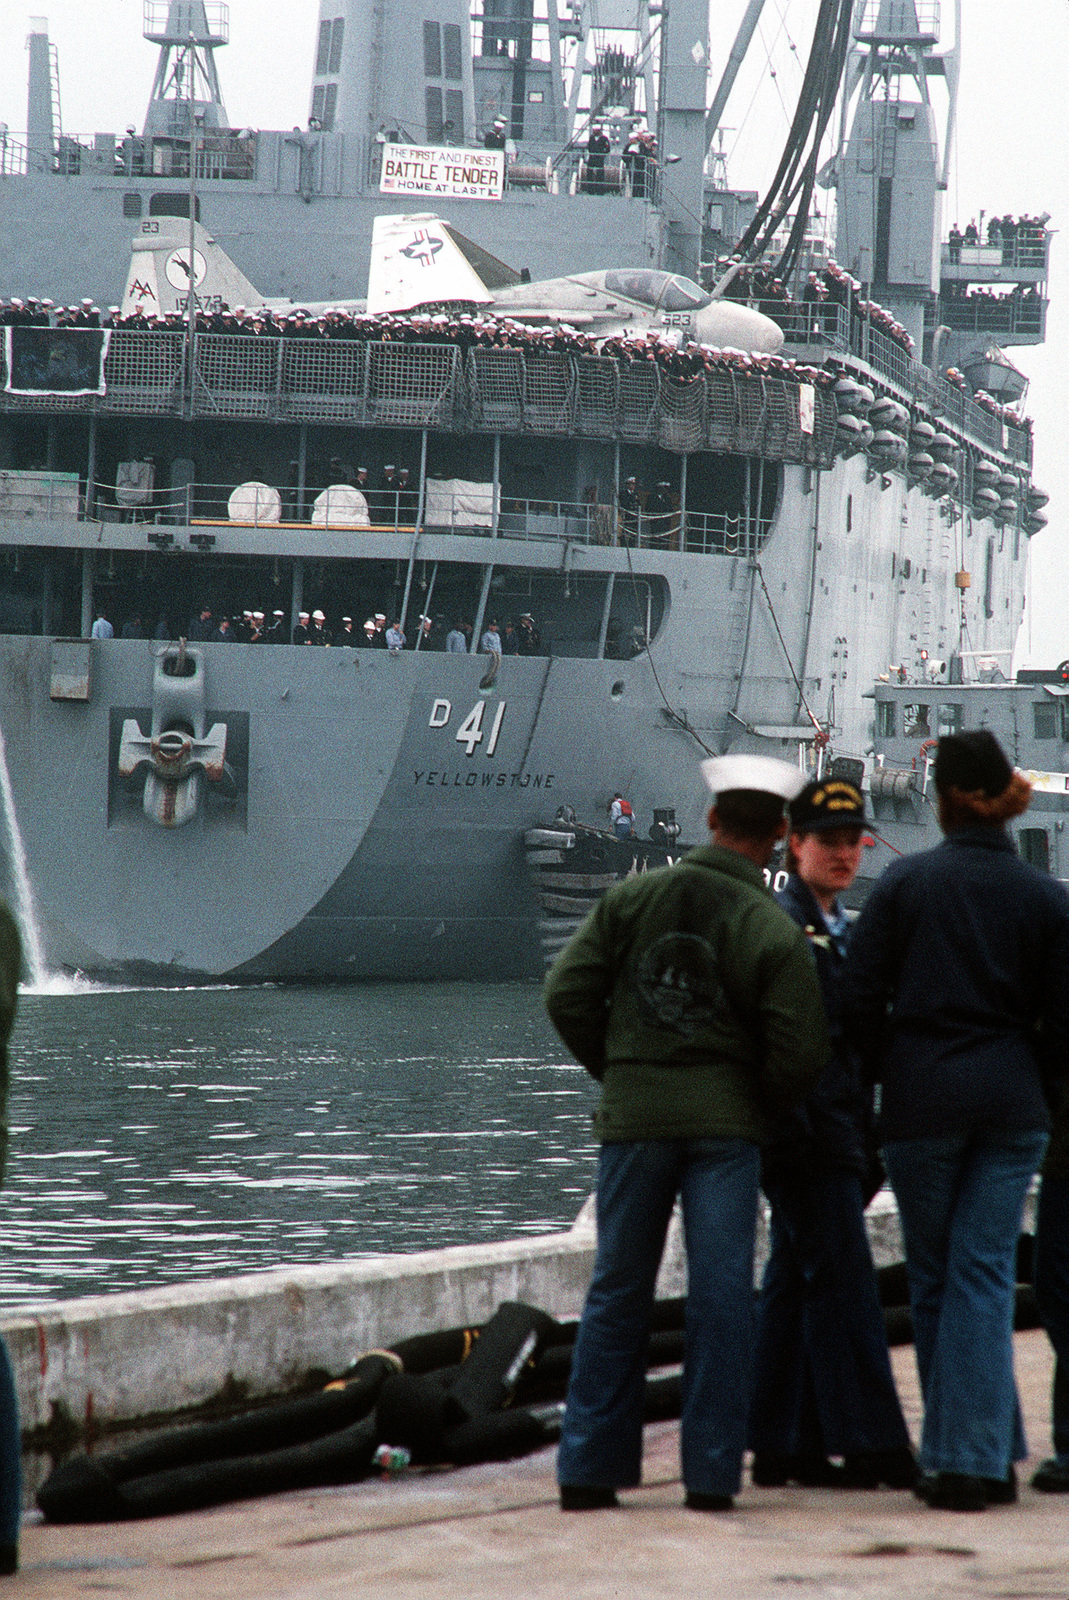 Line handlers stand by as a large harbor tug helps bring the destroyer tender USS YELLOWSTONE (AD-41) alongside the pier. The YELLOWSTONE is returning to Norfolk following its deployment to the Persian Gulf region in support of Operation Desert Shield and Operation Desert Storm. An Attack Squadron 35 (VA-35) A-6E Intruder aircraft sits on the YELLOWSTONE's helicopter deck